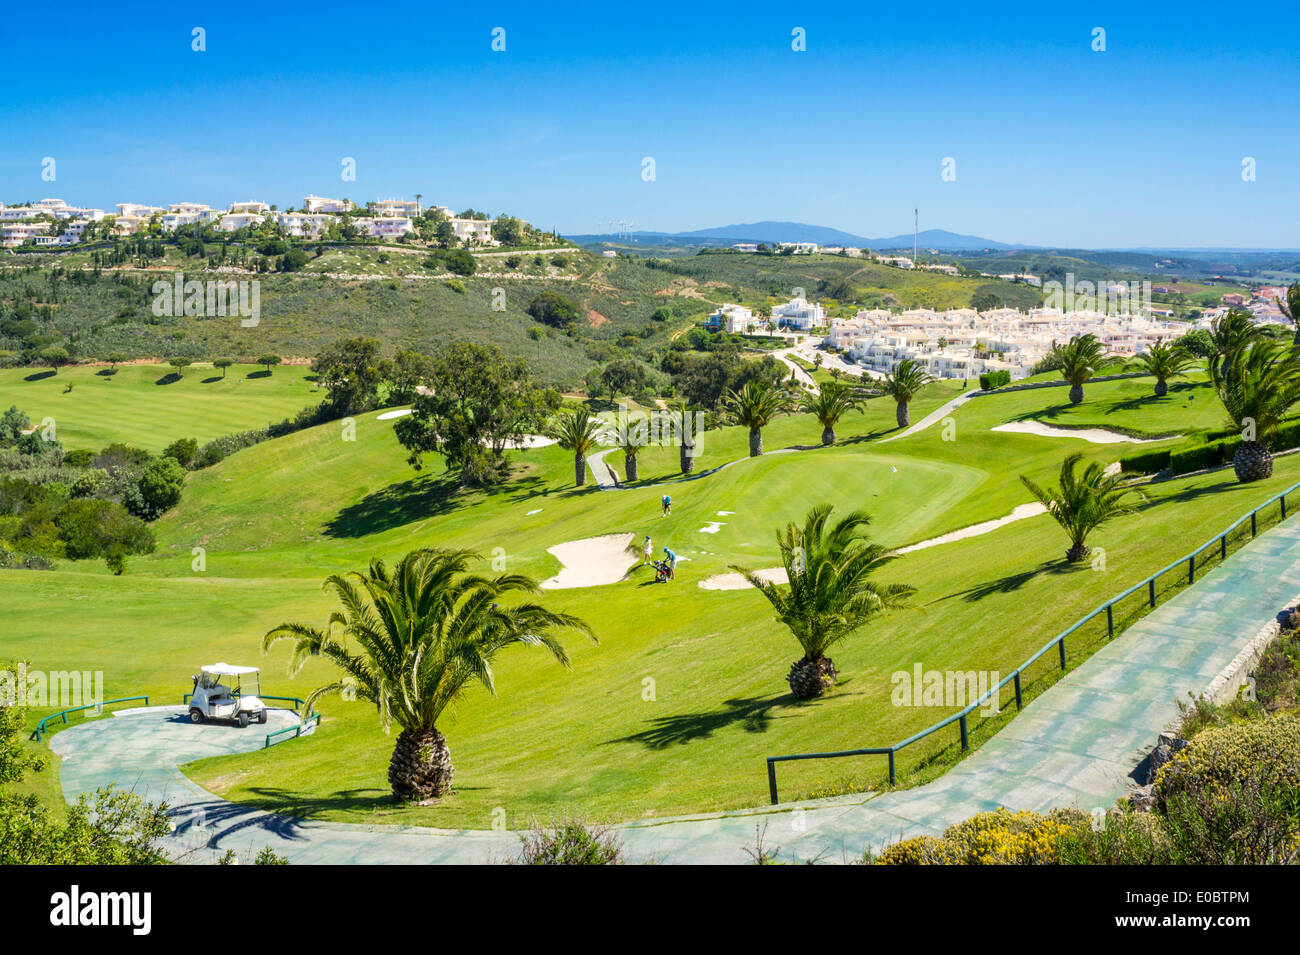 Golf buggy parked at the first hole and fairway Parque da Floresta golf course Vale do Poco Budens  near Salema Algarve Portugal - Stock Image